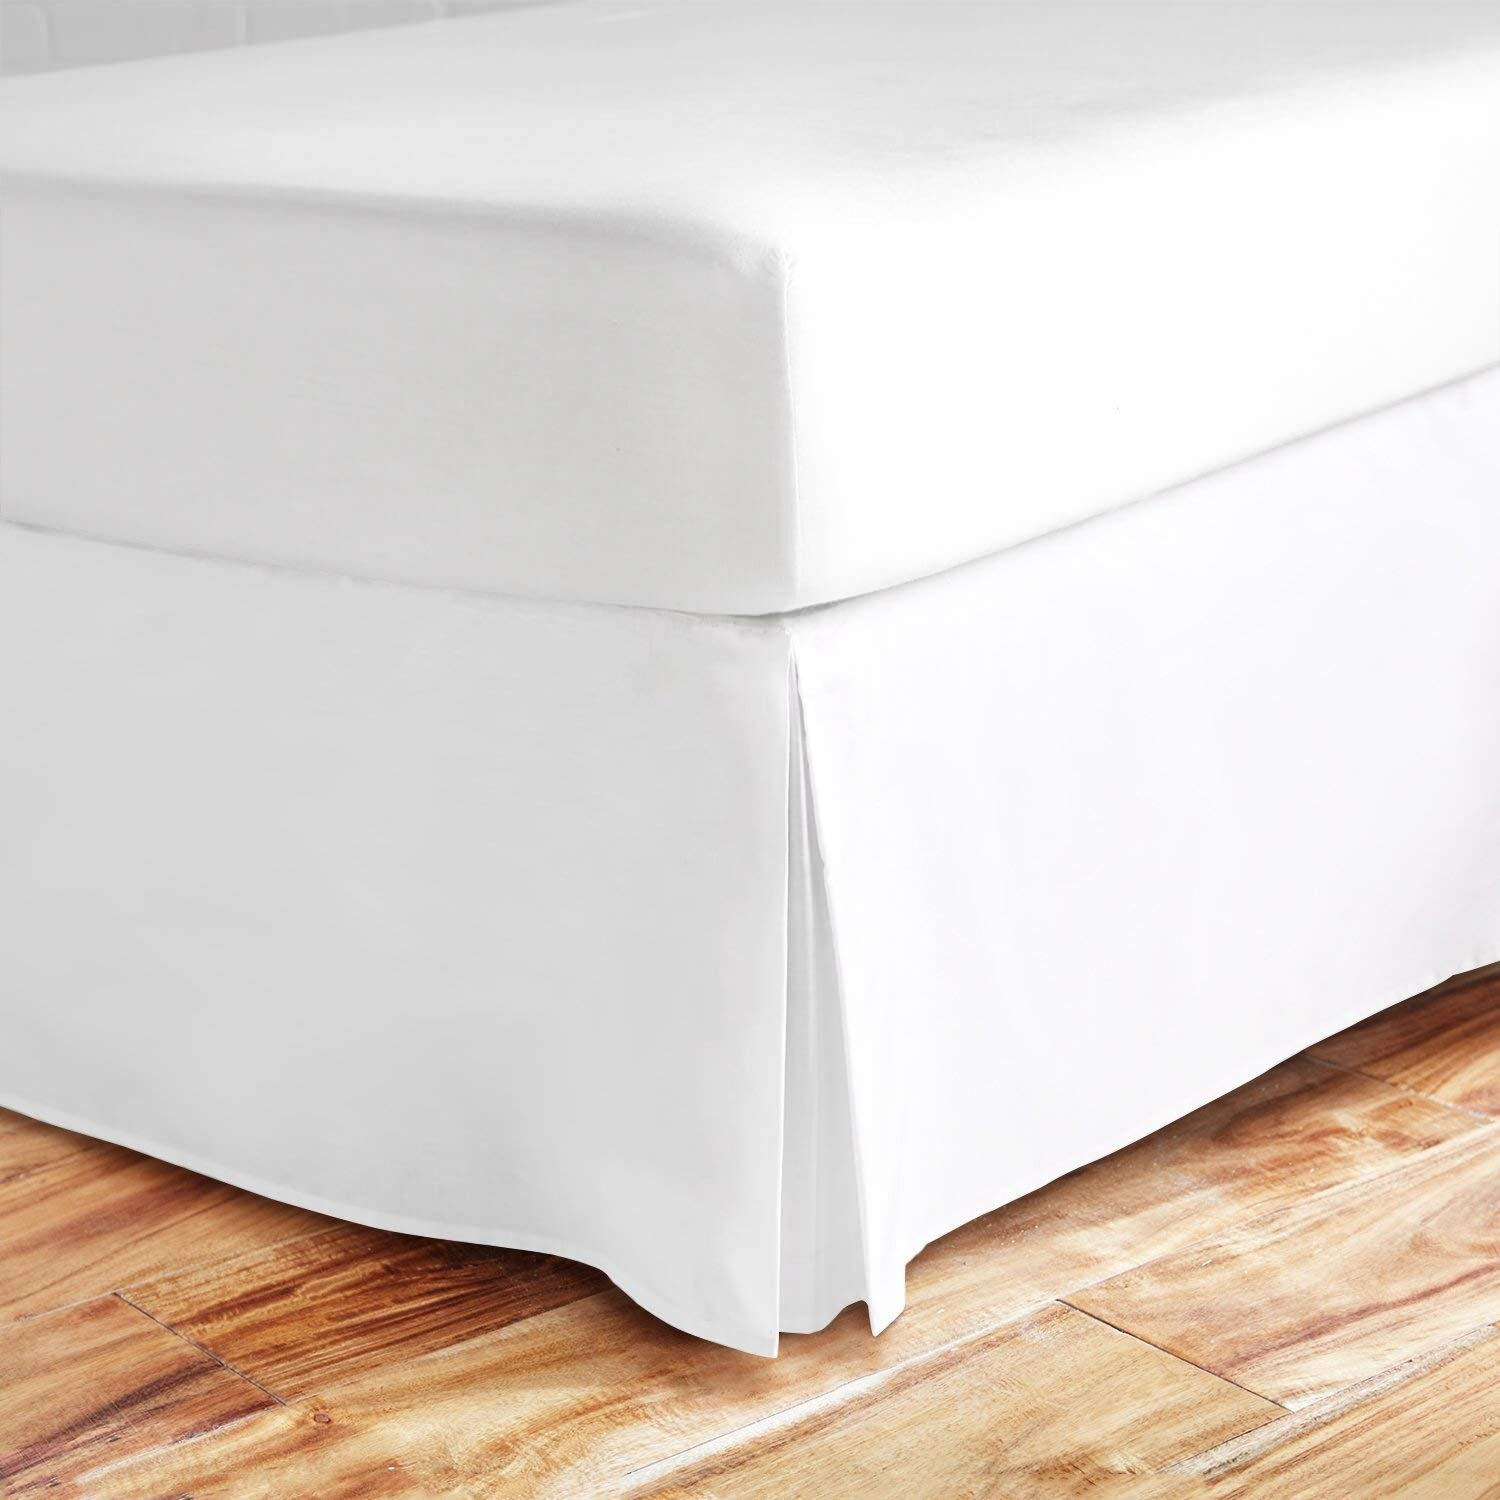 NVT Linen Hotel Luxury Bed Skirt 400 Thread Count Egyptian Cotton Premium Quality Bed Skirt { Drop/Fall Length 9 Inch } Perfect Size King (76X80) White Solid Pattern